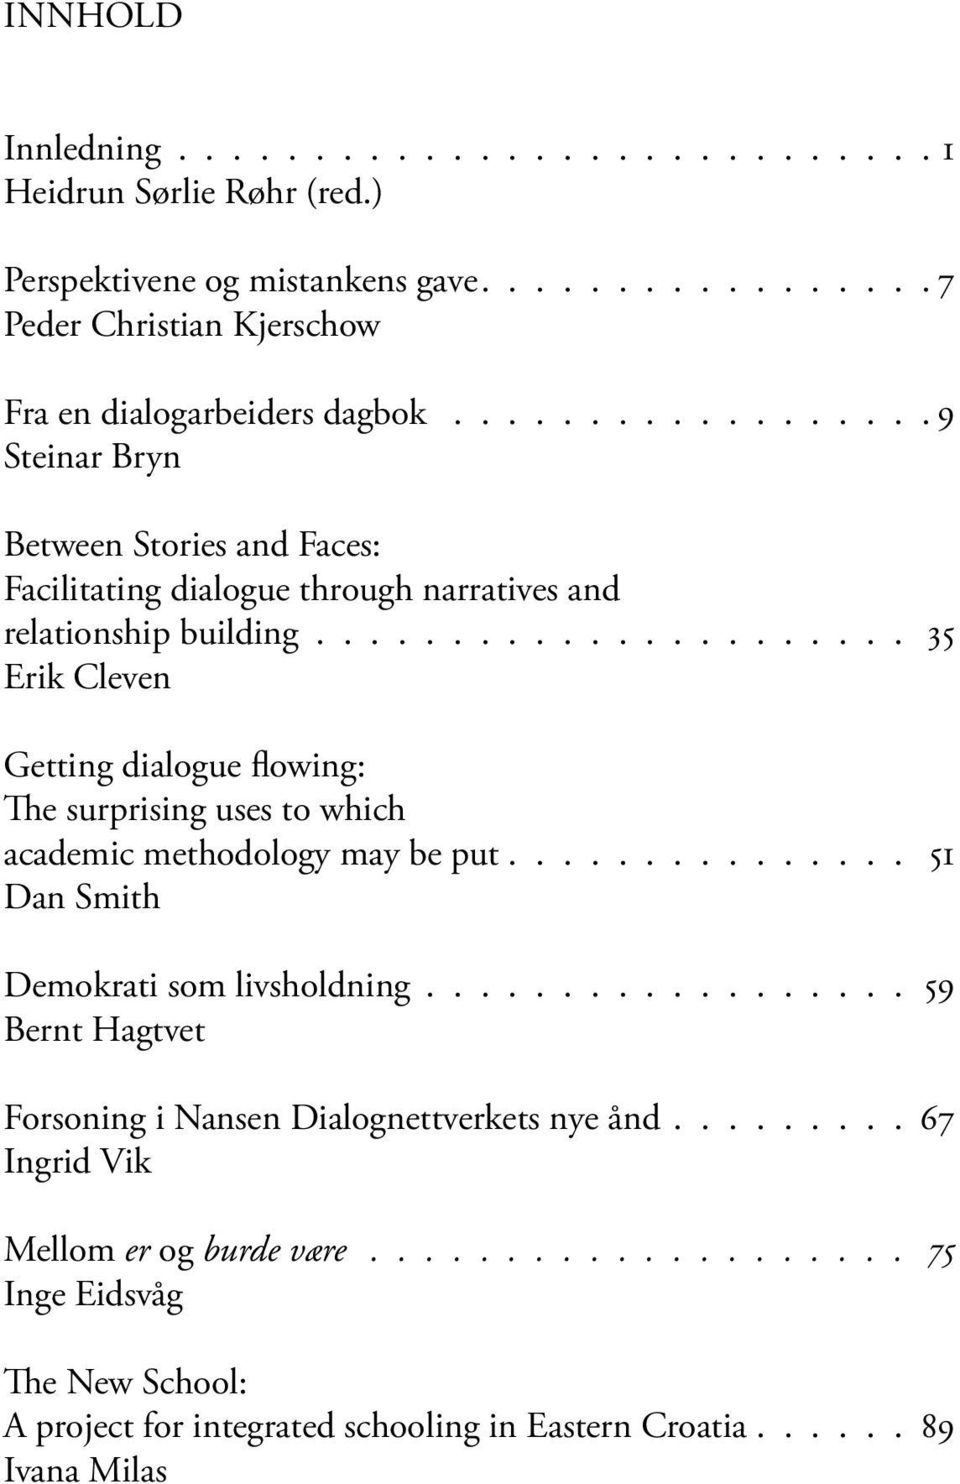 ..................... 35 Erik Cleven Getting dialogue flowing: The surprising uses to which academic methodology may be put............... 51 Dan Smith Demokrati som livsholdning.